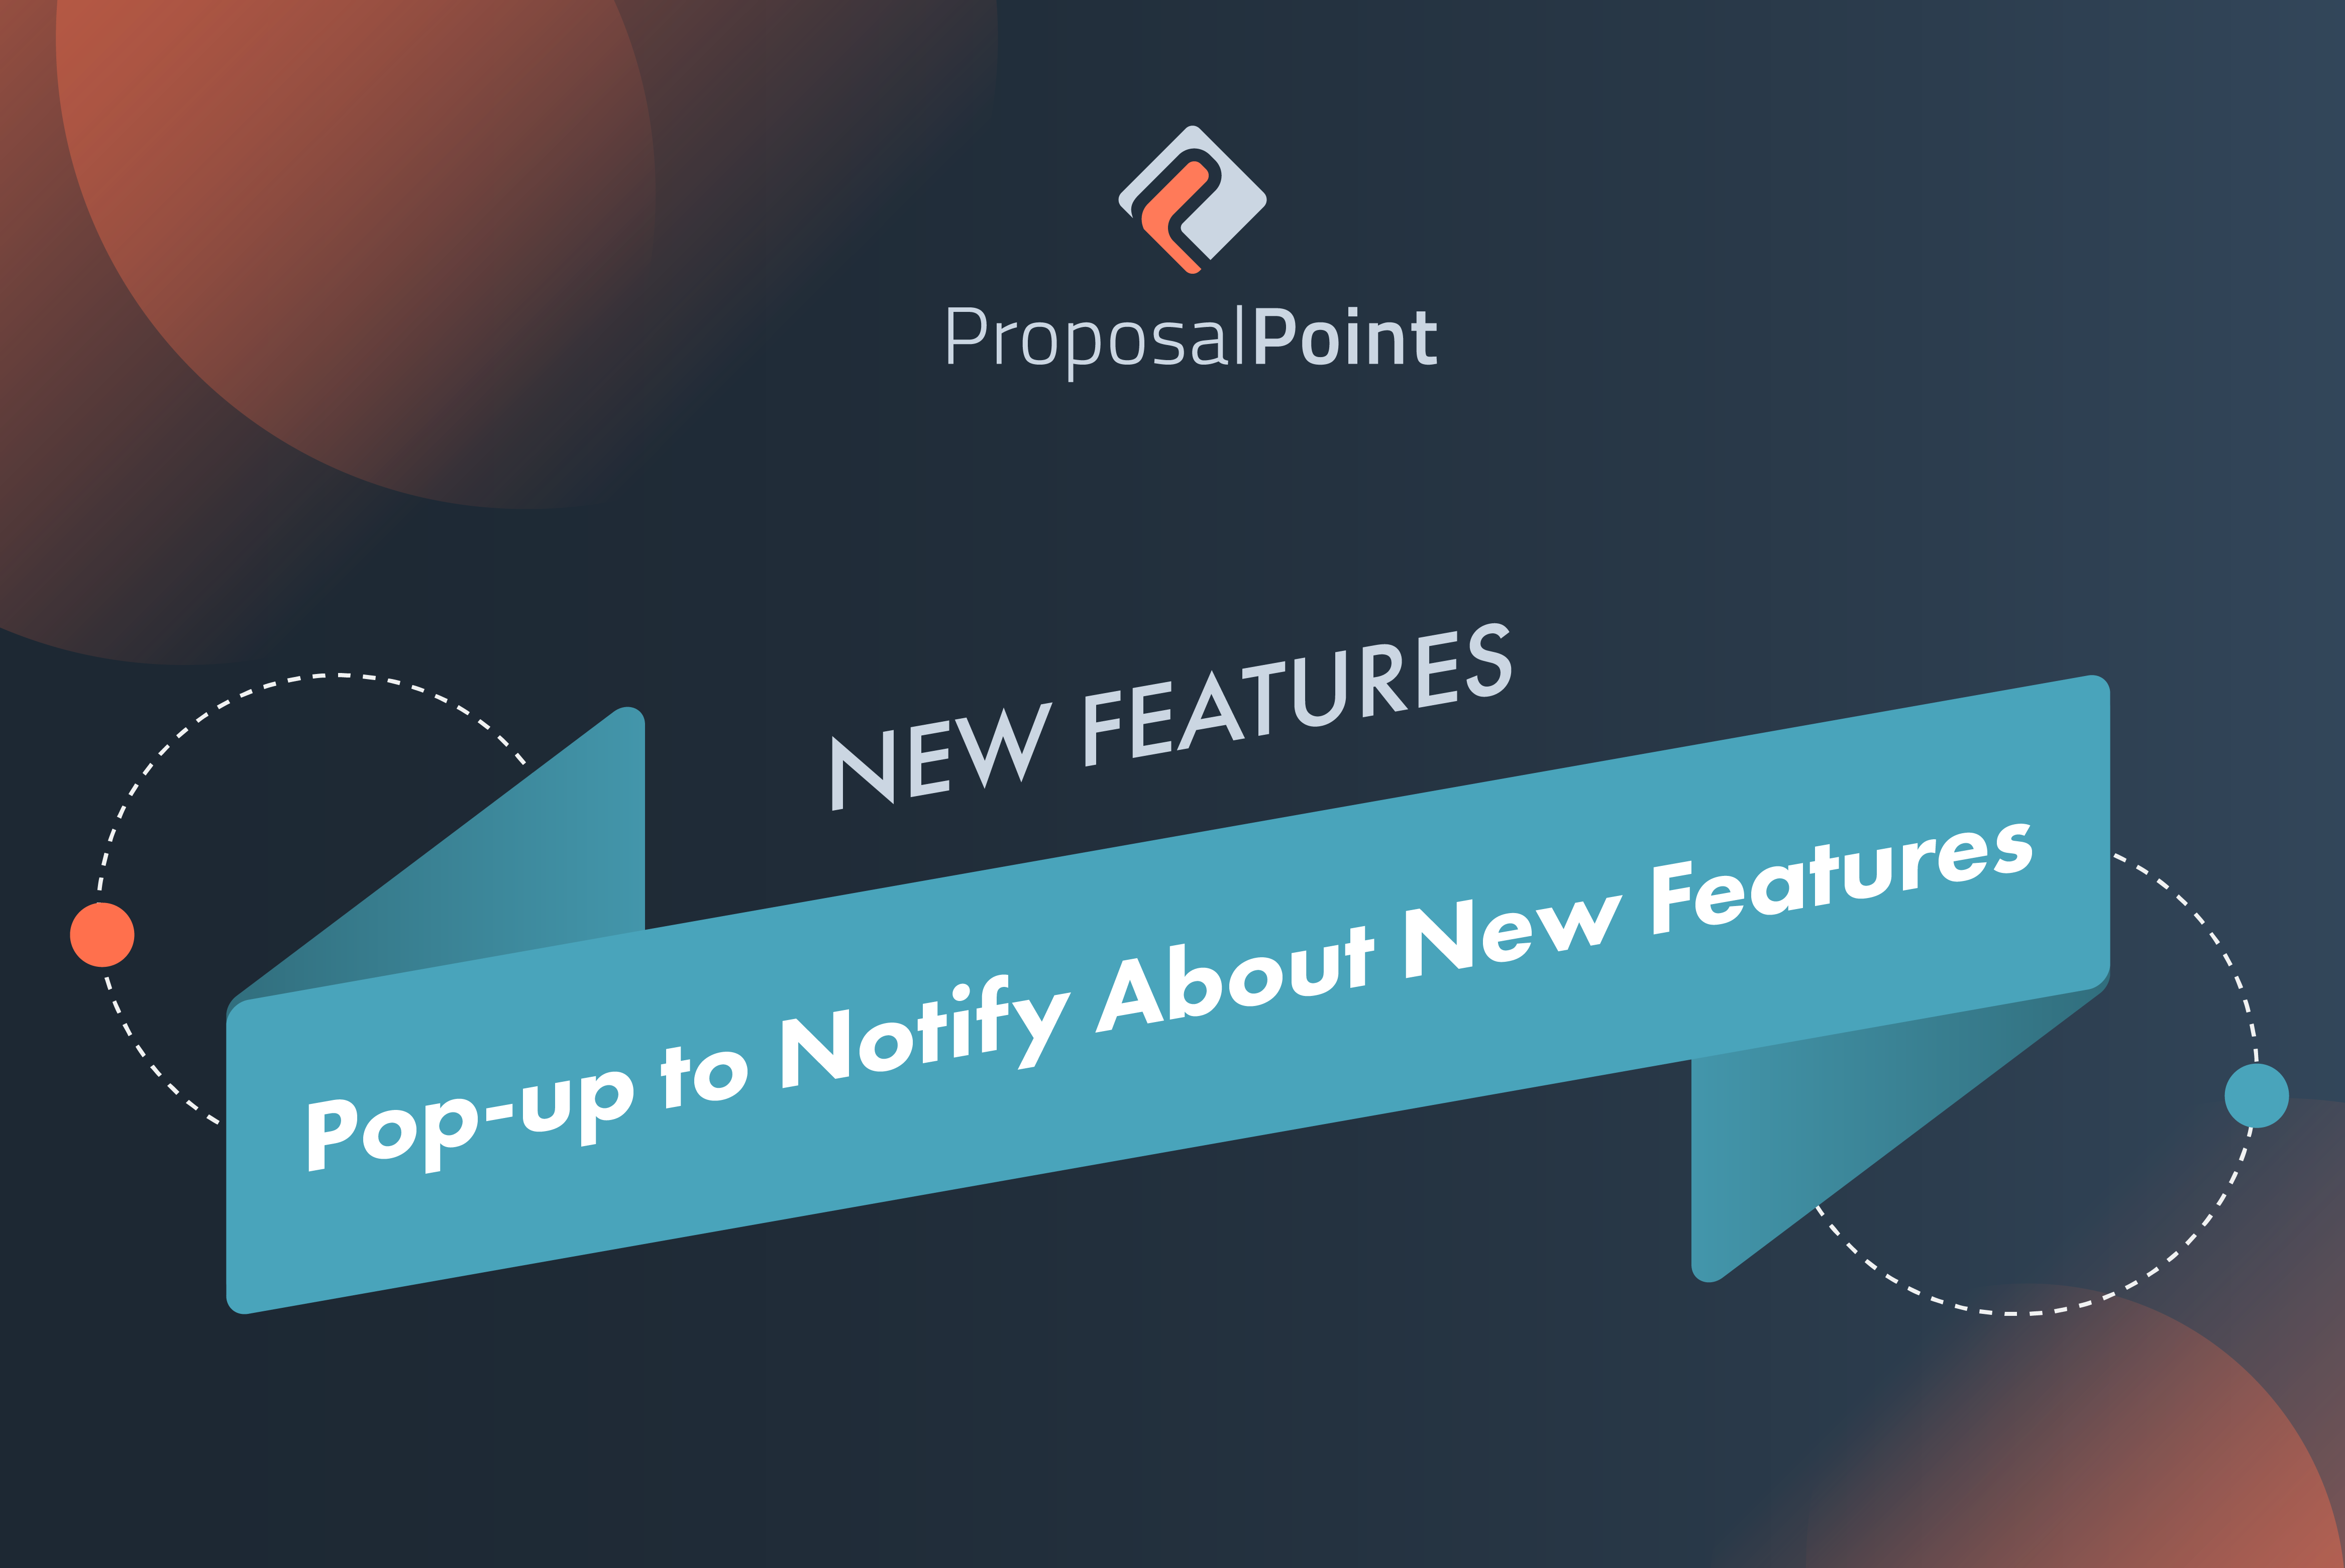 New Feature: Pop-up to Notify About New Features